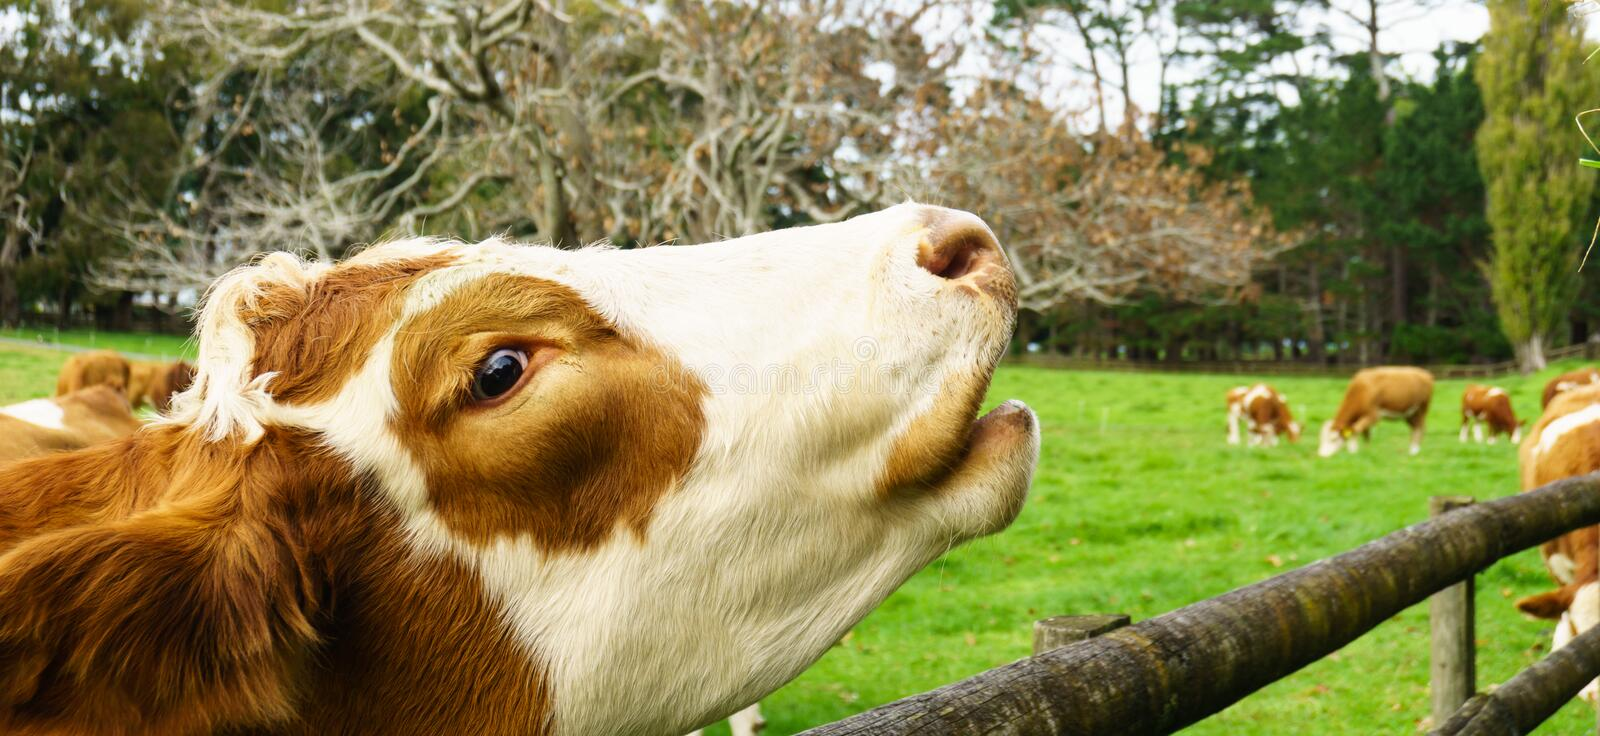 Hereford cow head. Hereford cow reaches over wooden rail fence on farm stock photos